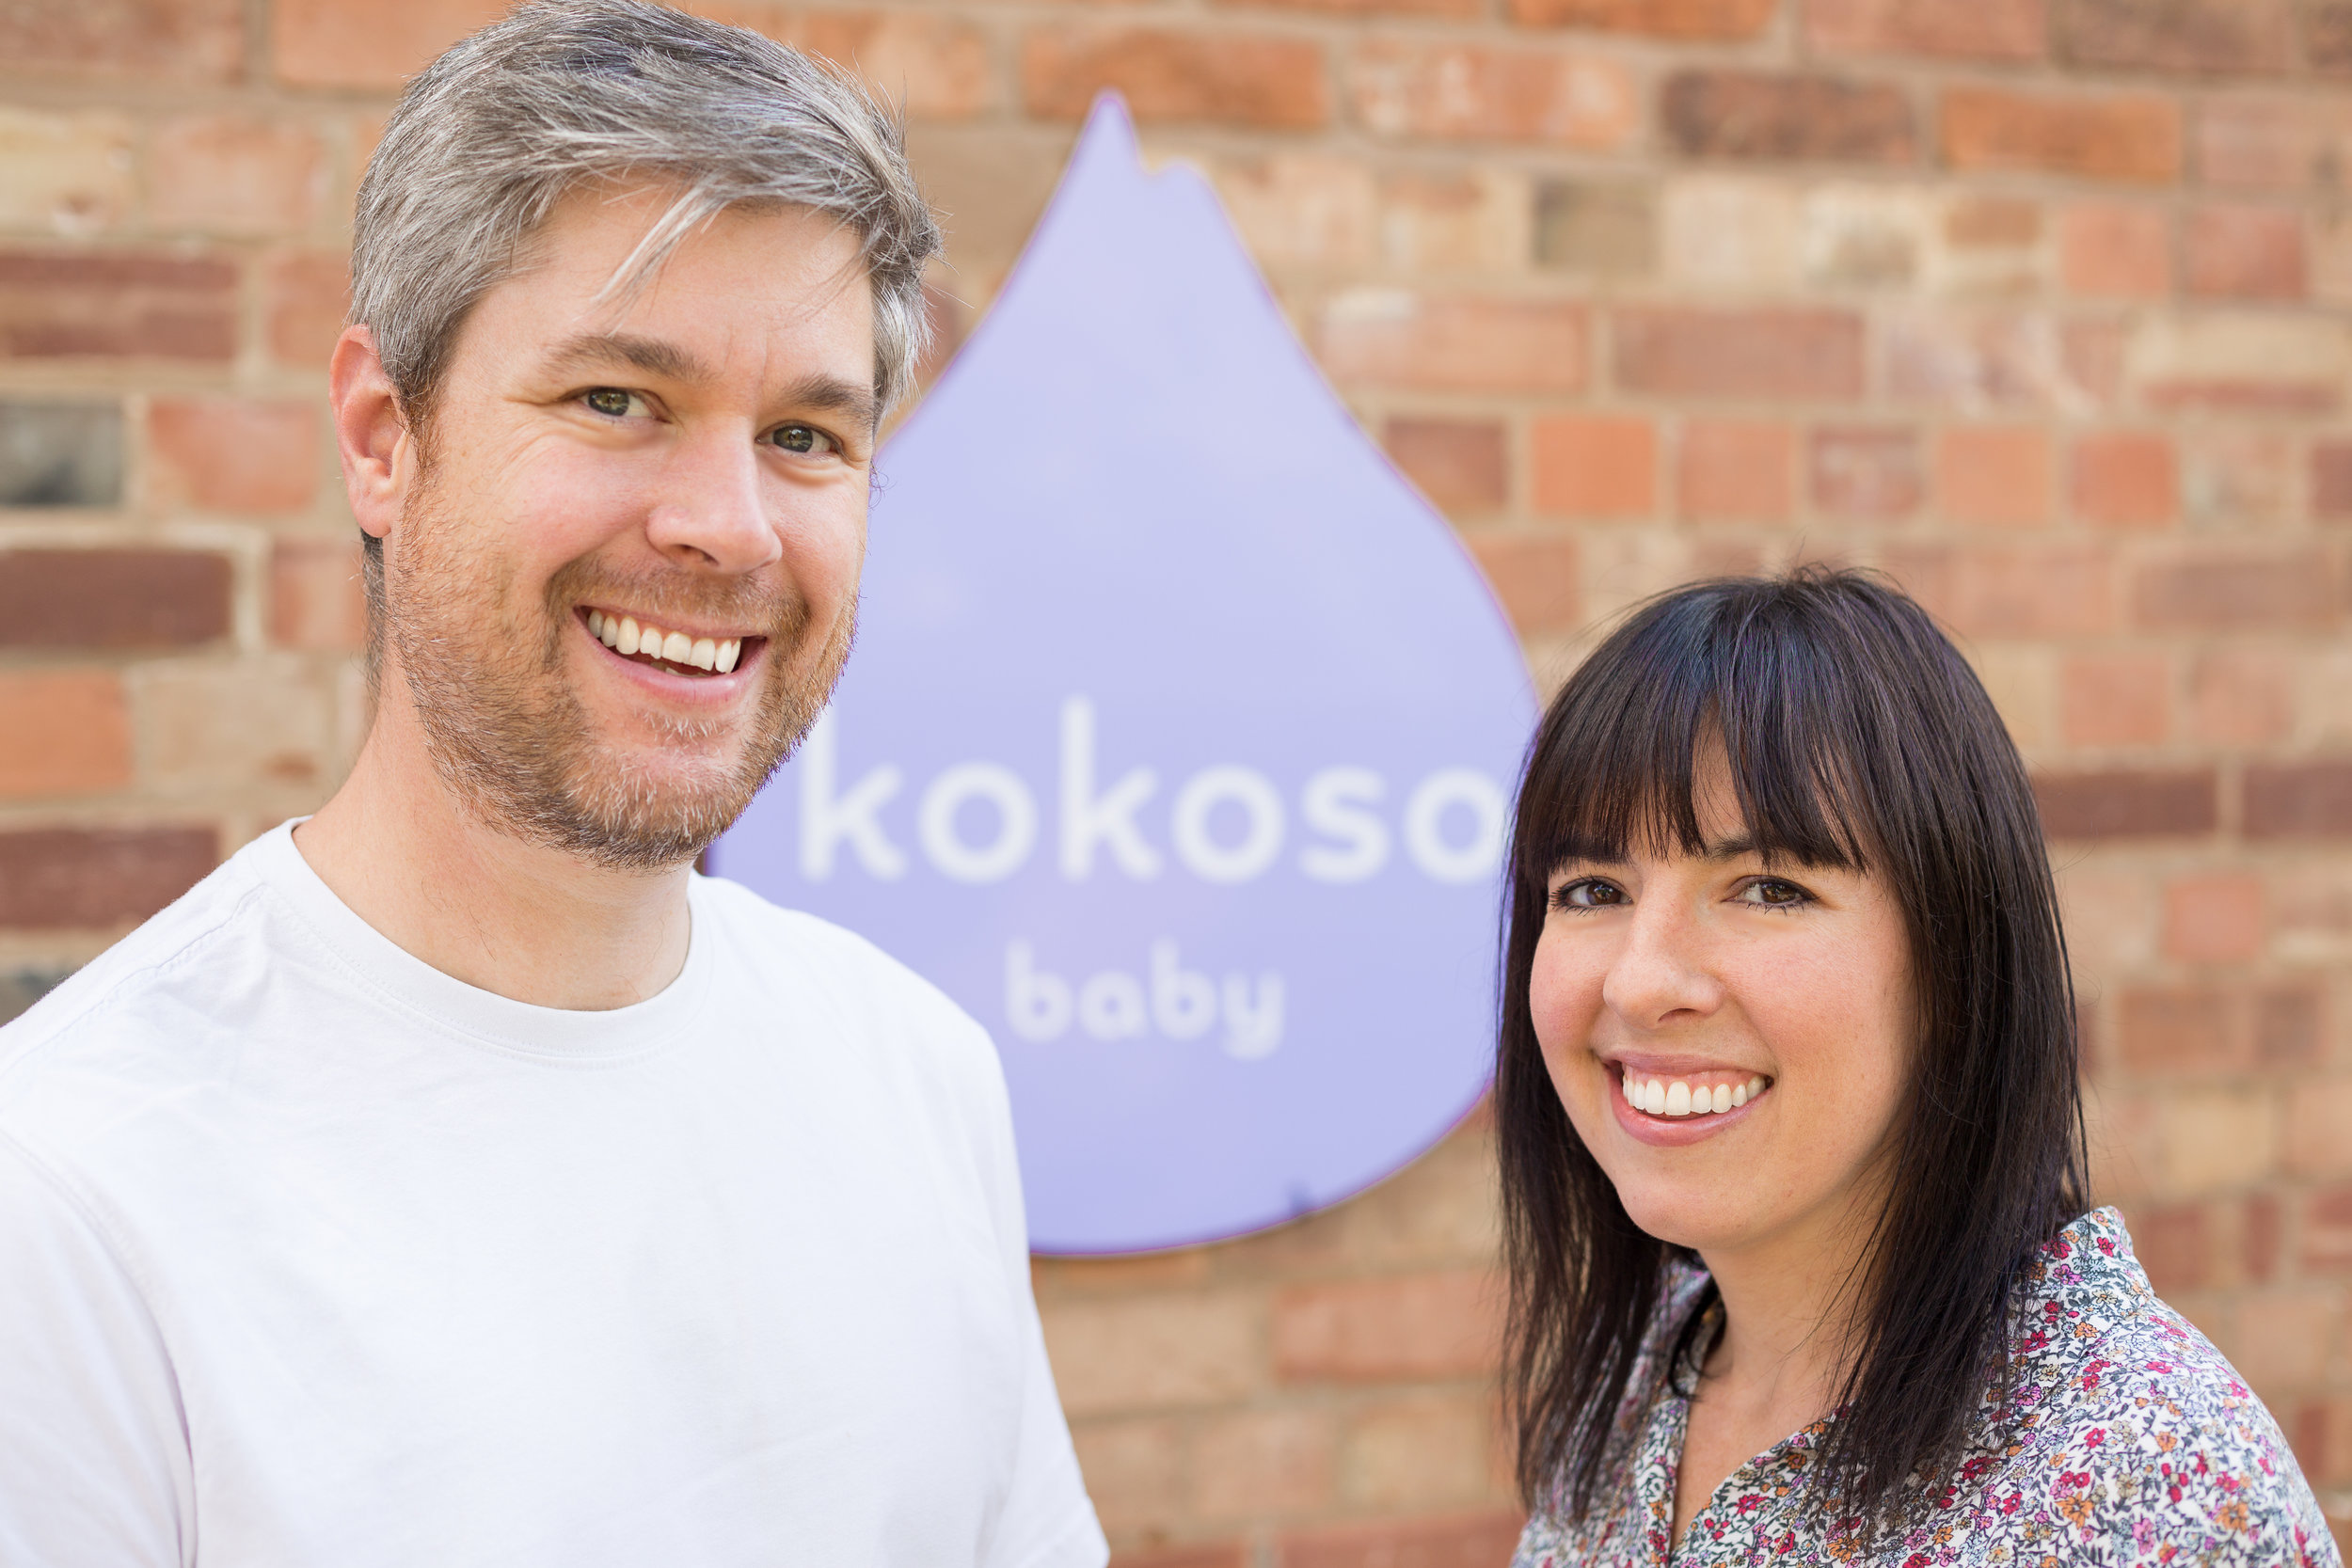 Lauren and Mark Taylor started Kokoso Baby after discovering the wonders of coconut oil on their little one's skin.